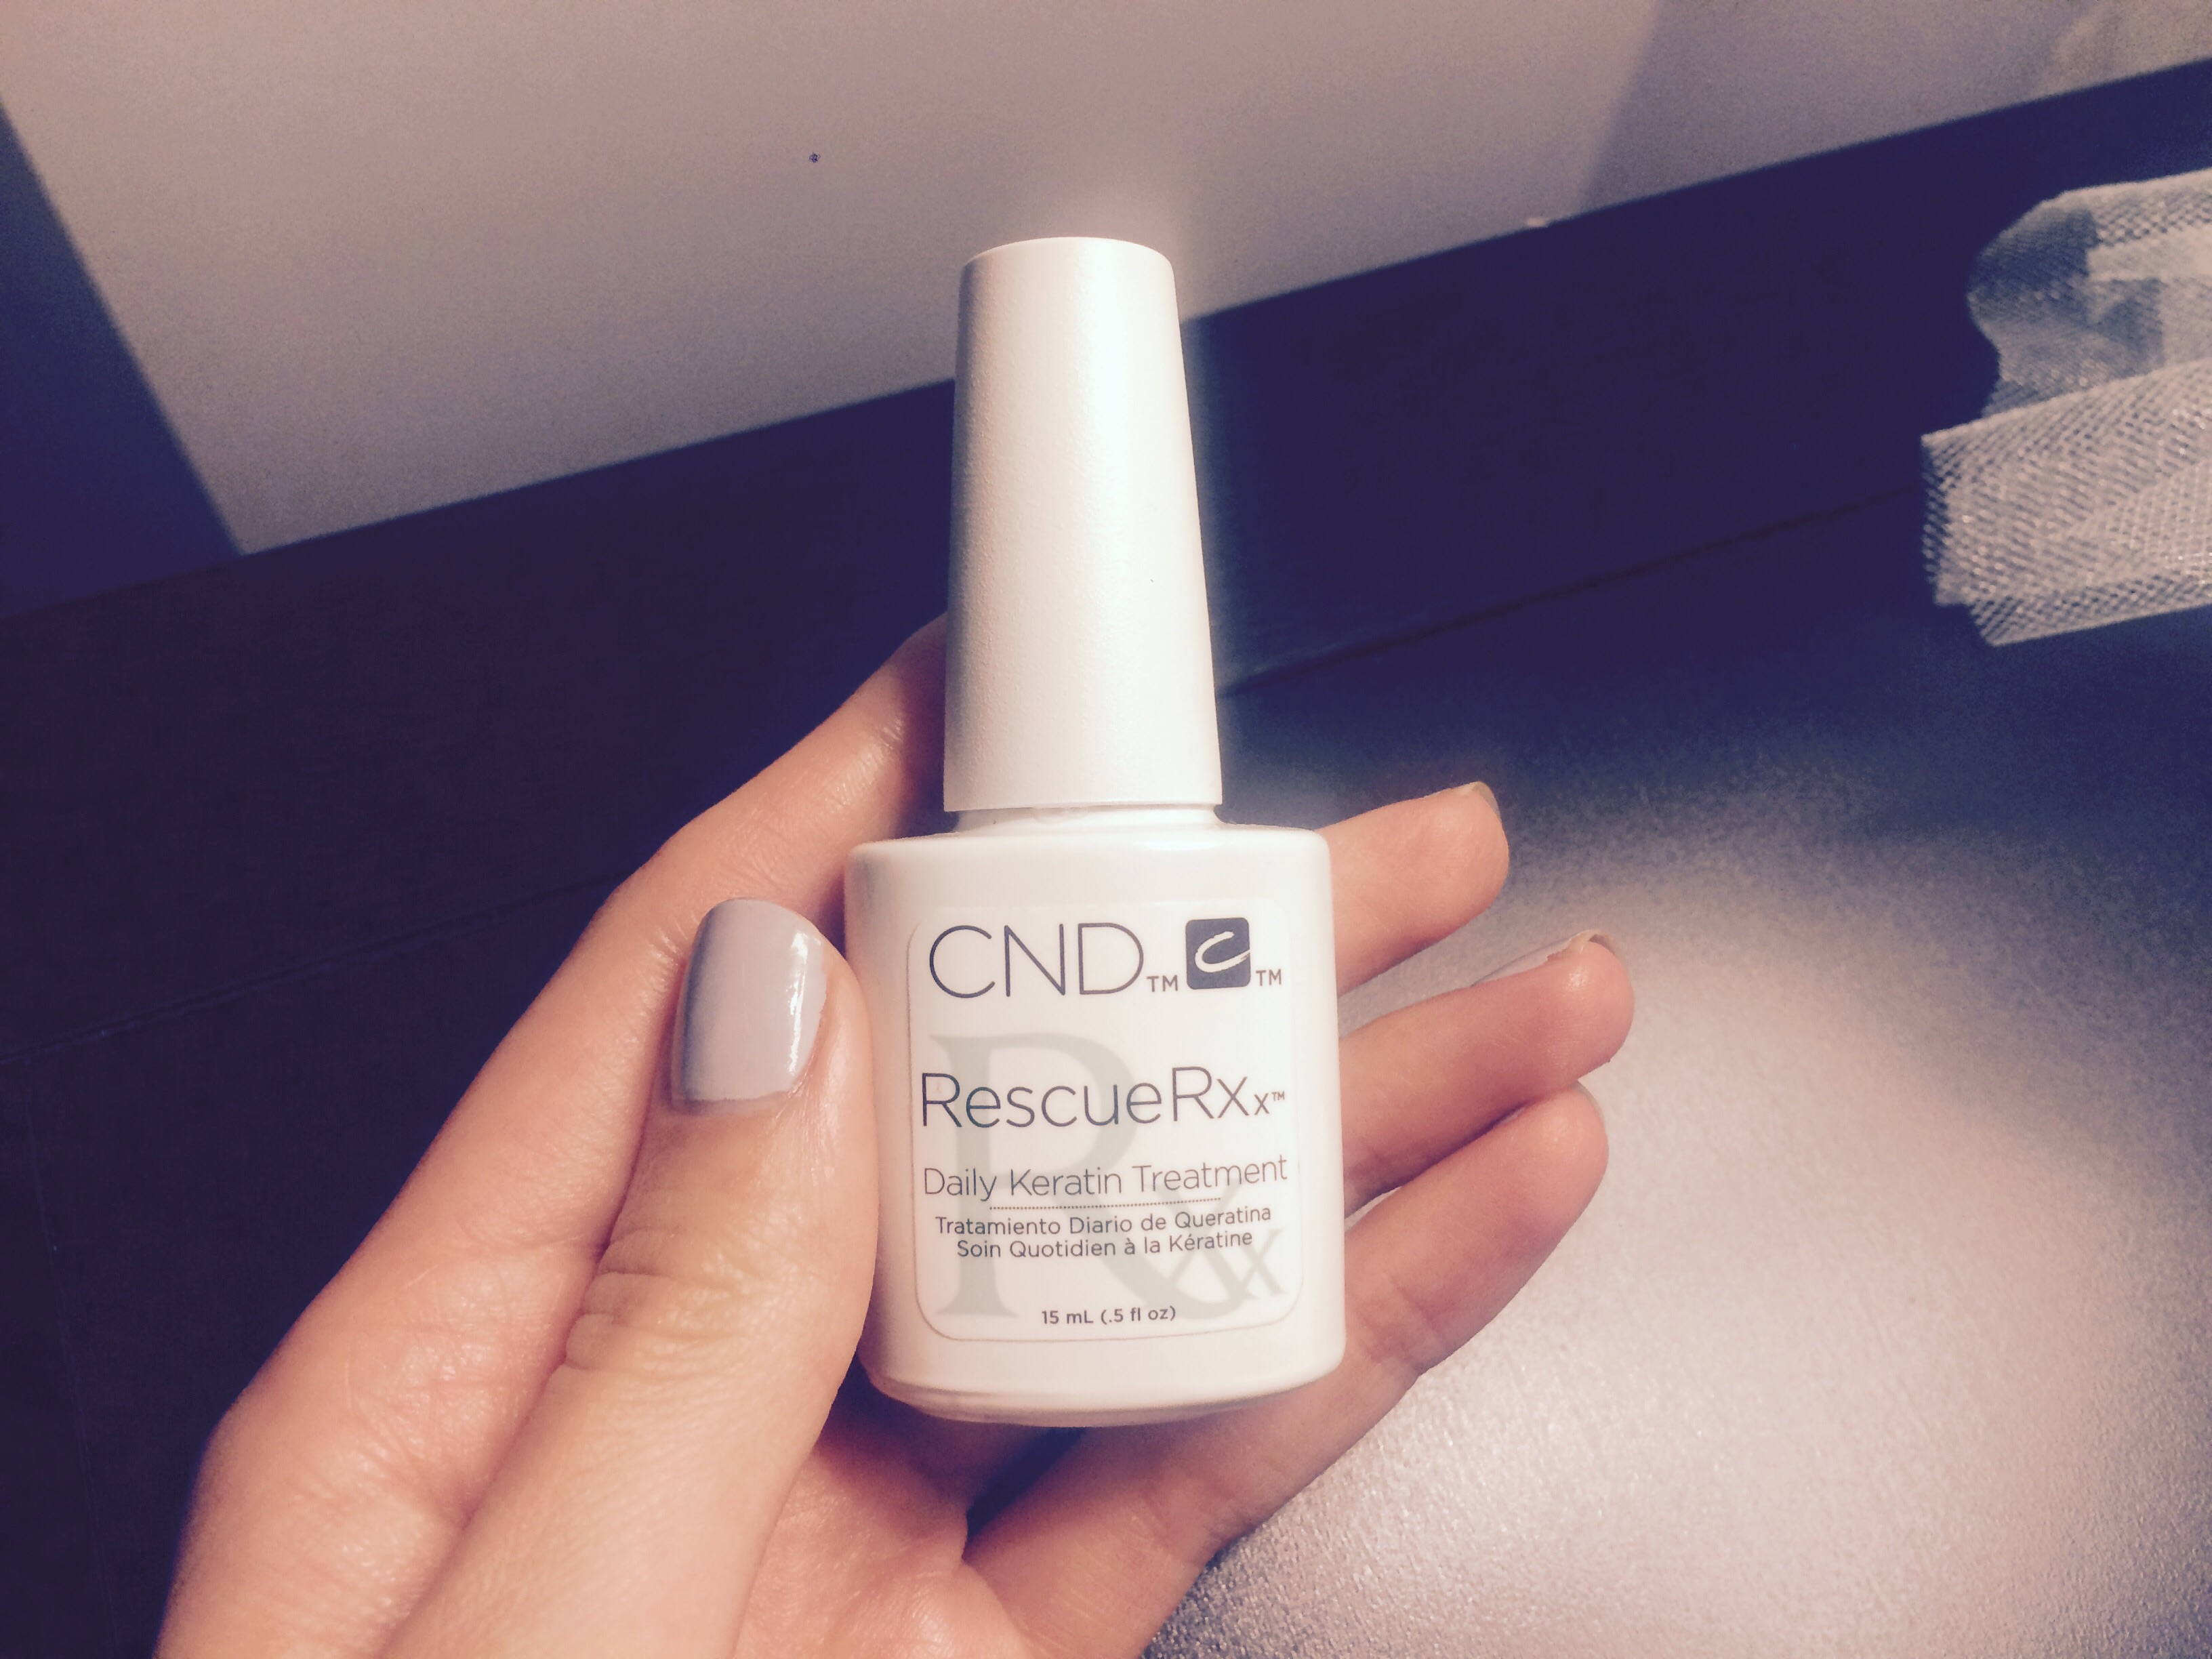 Daily Keratin Treatment Rescue Rx Nail Strengthener Launched By CND ...